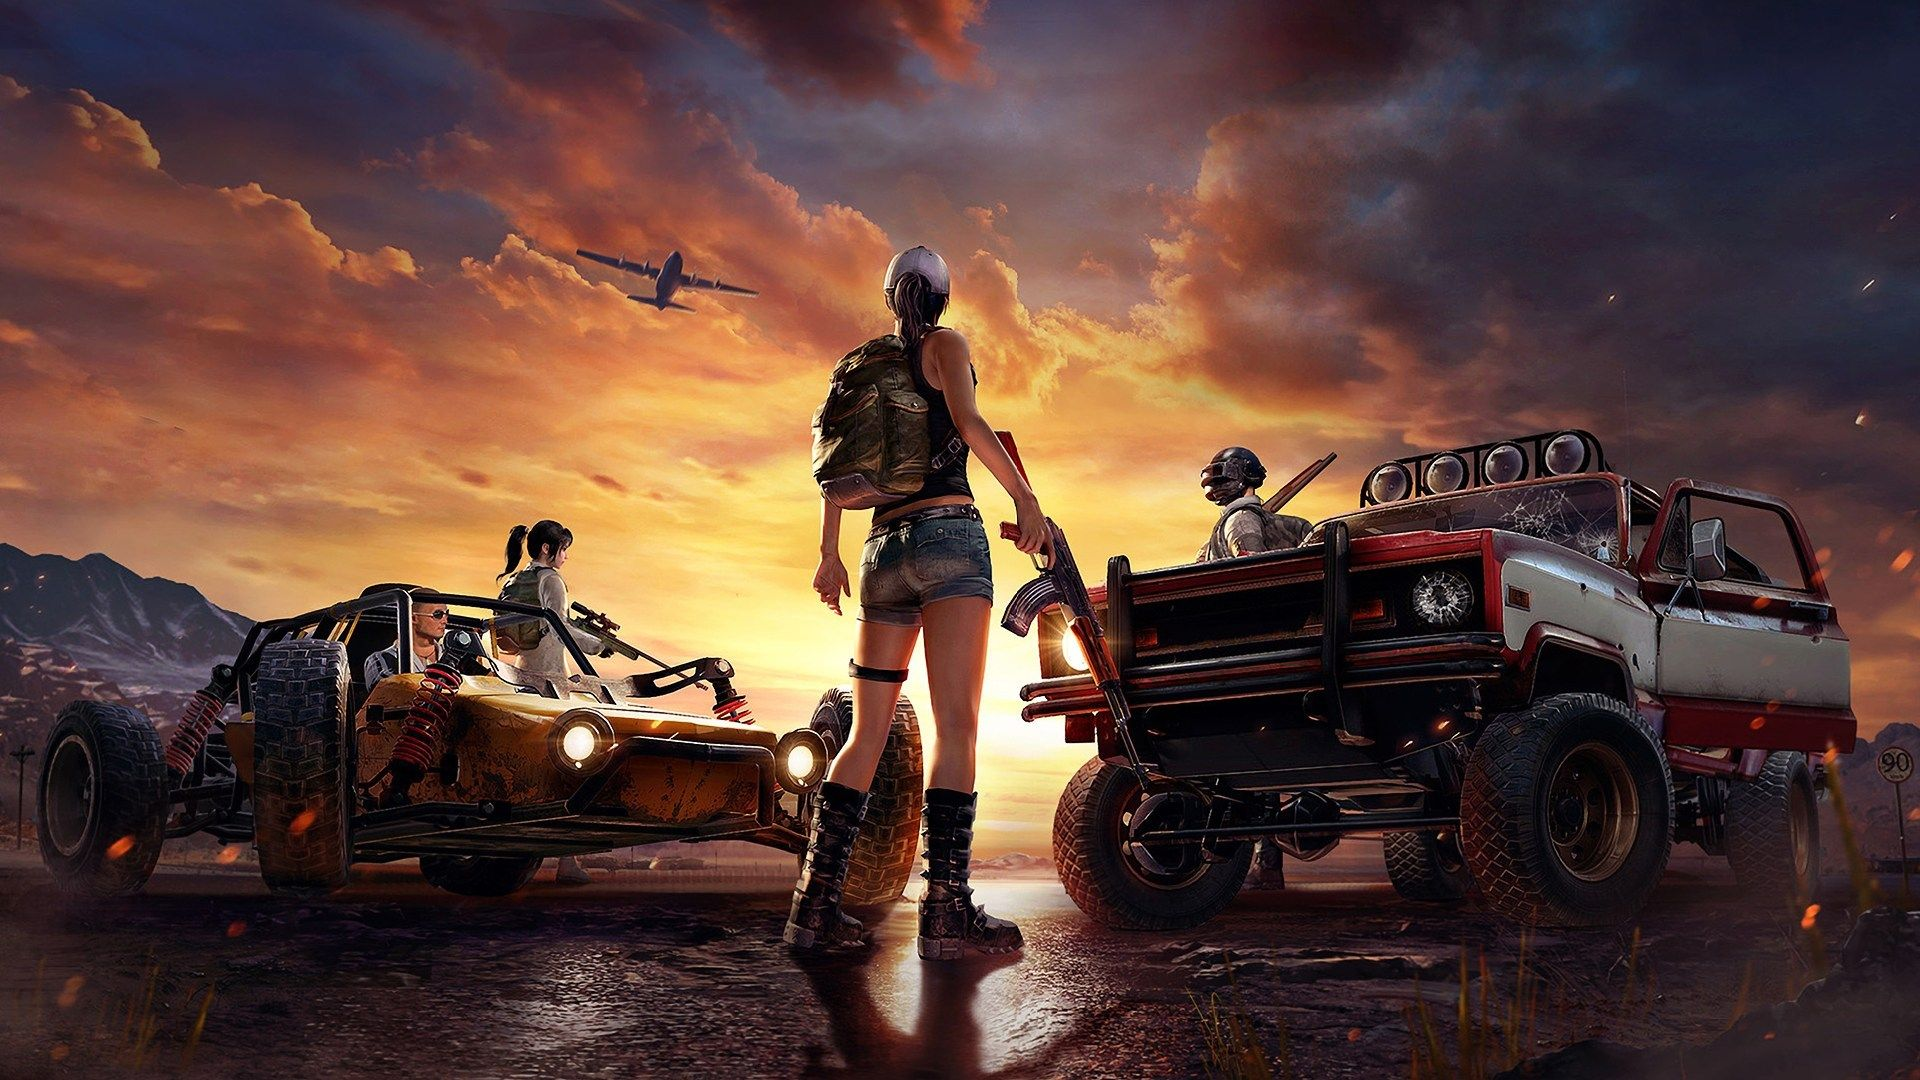 Pubg Wallpaper Hd Desktop Background Images Picture Pics 1080p 4k 2k 4k Wallpapers For Pc Hd Wallpapers For Pc Wallpaper Pc